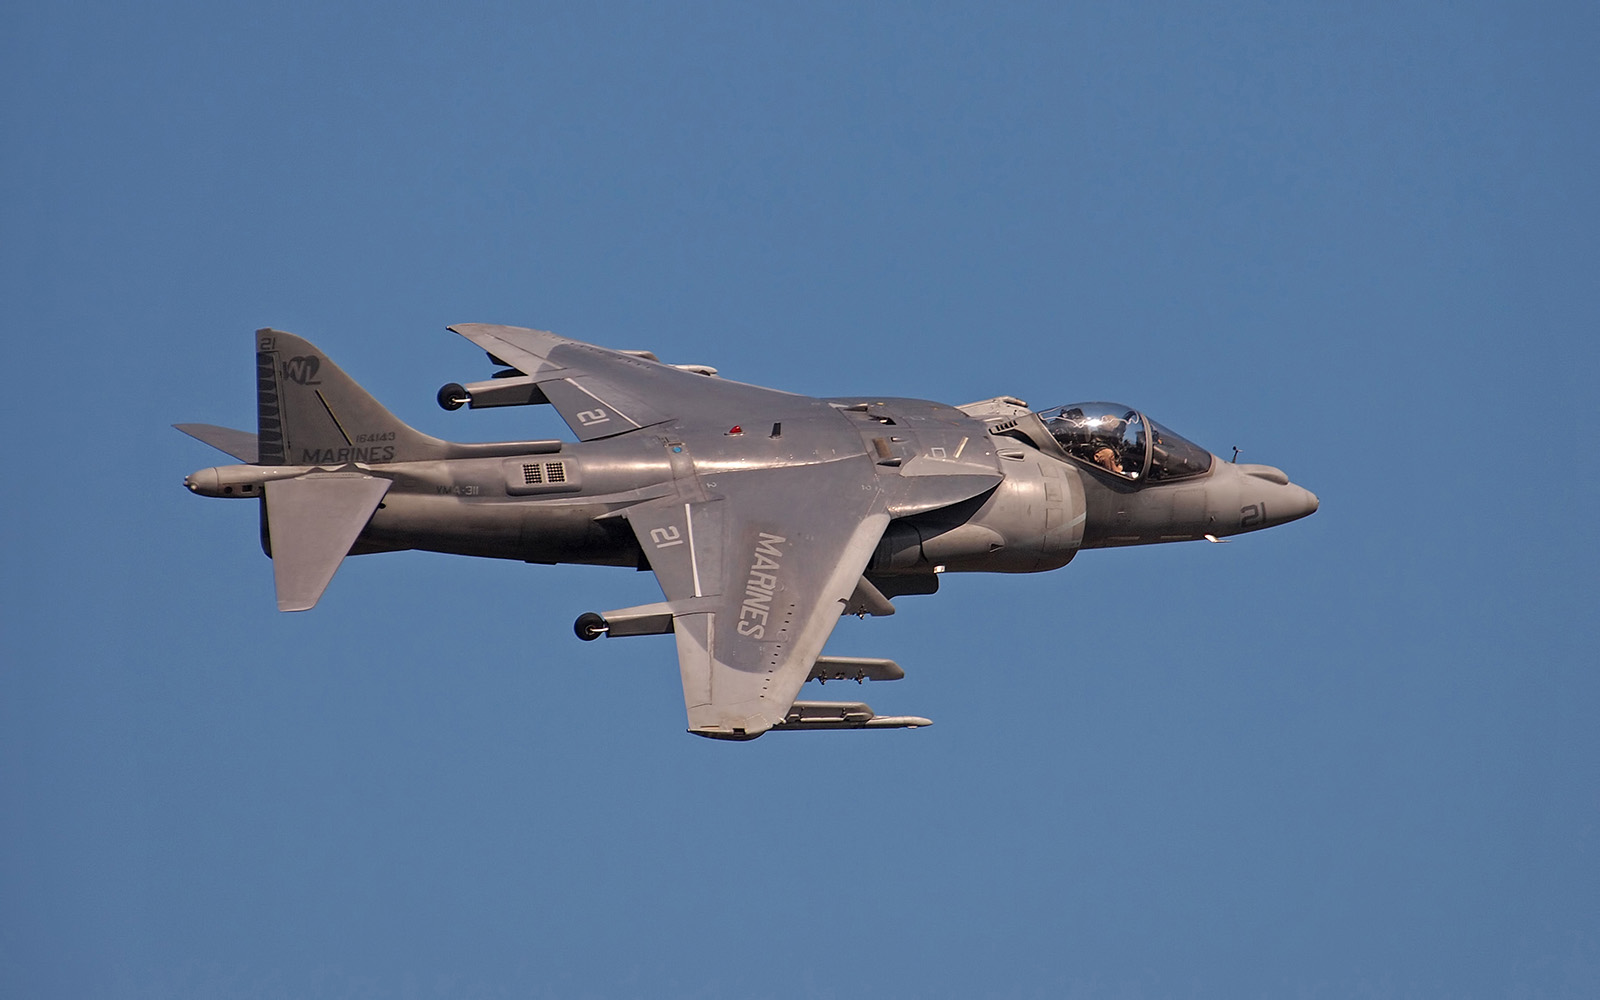 Harrier at EAA AirVenture 2011